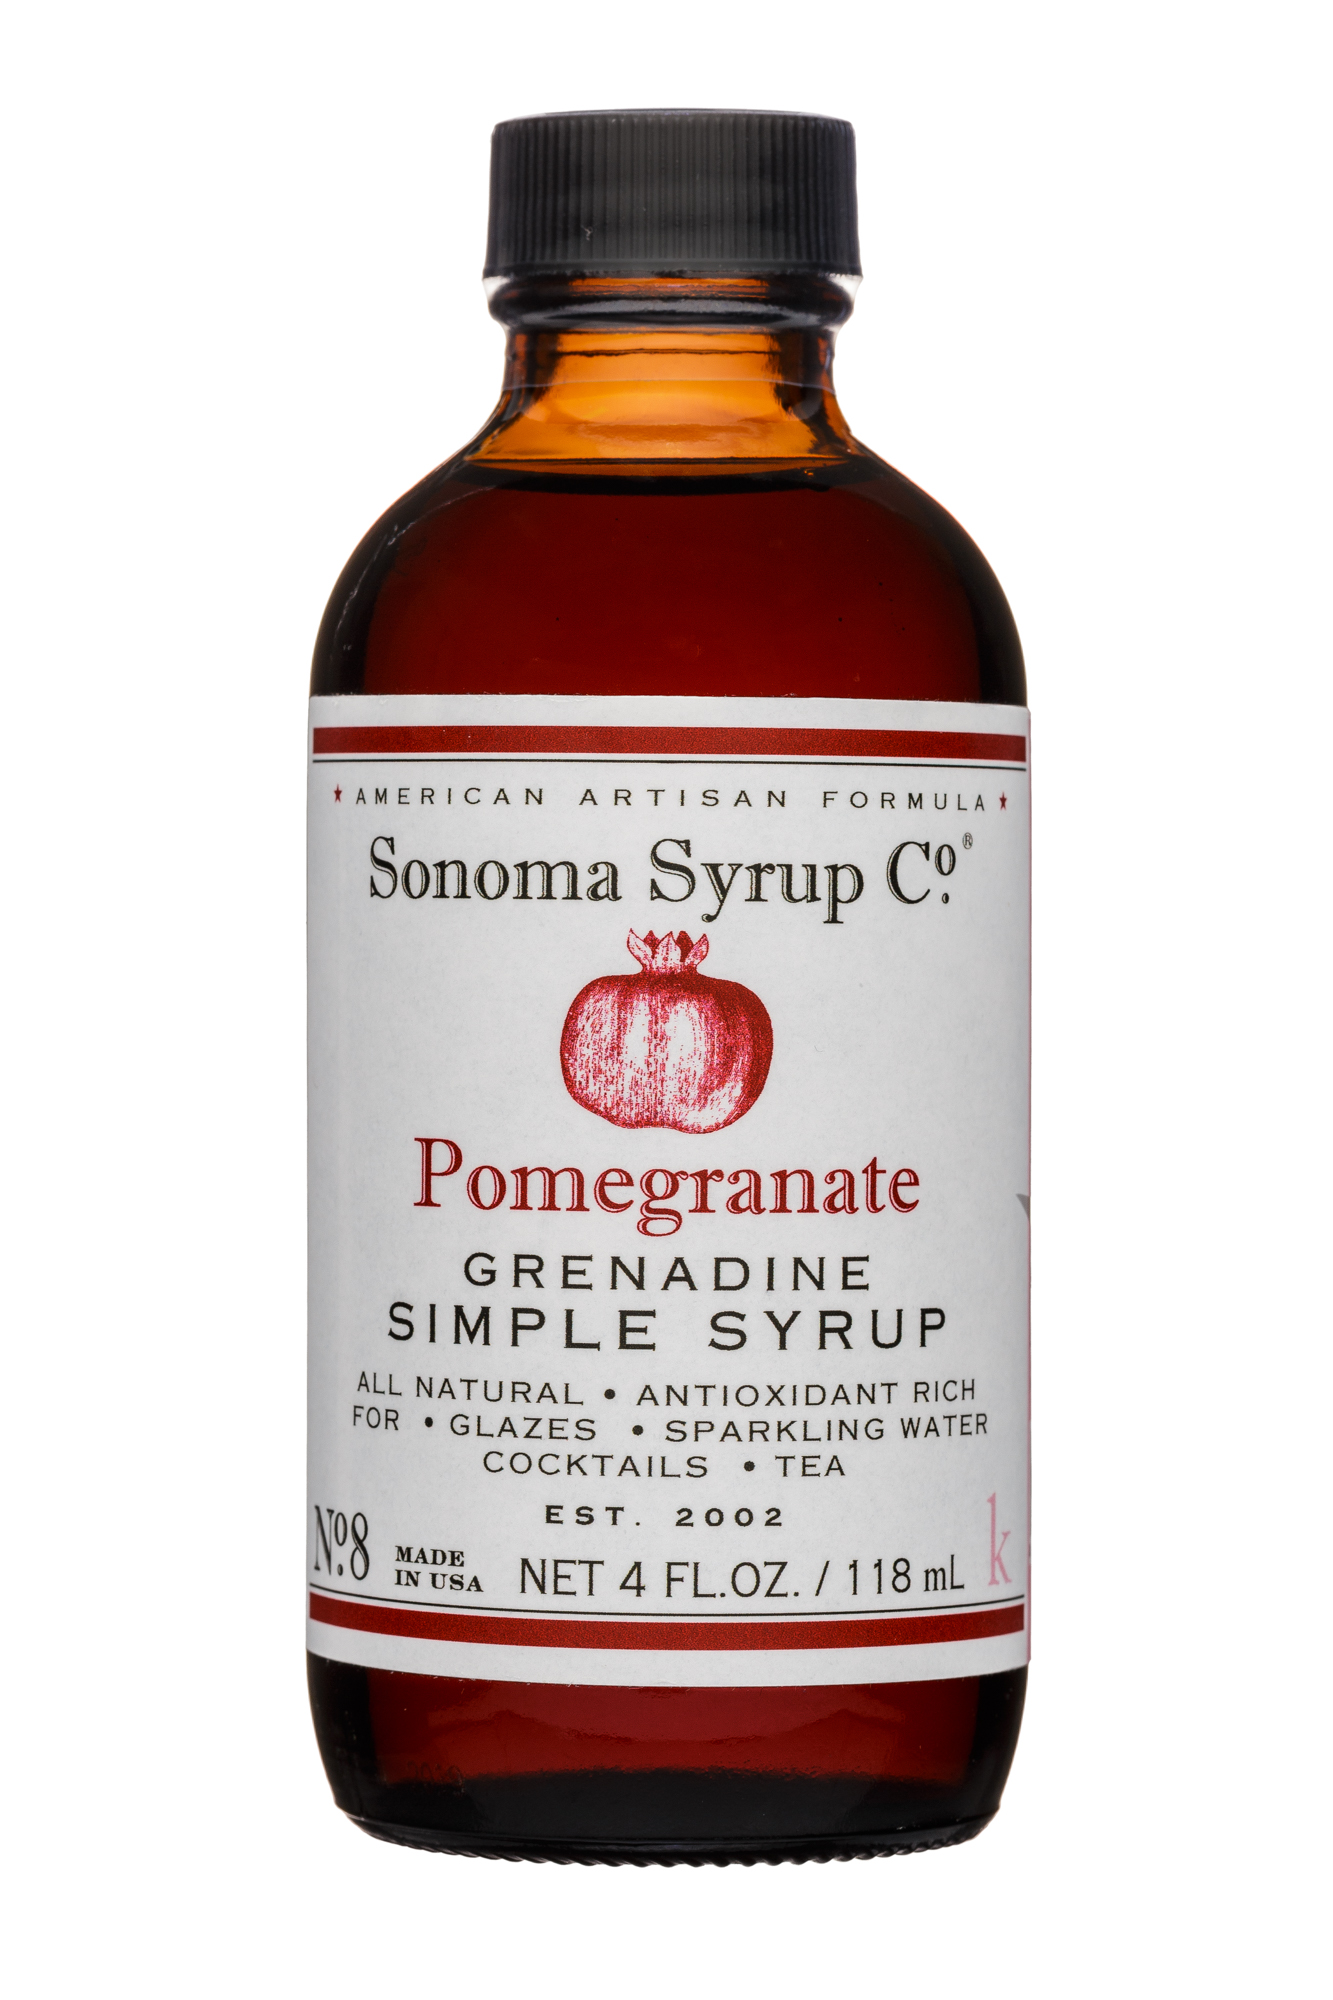 Pomegranate Grenadine Simple Syrup